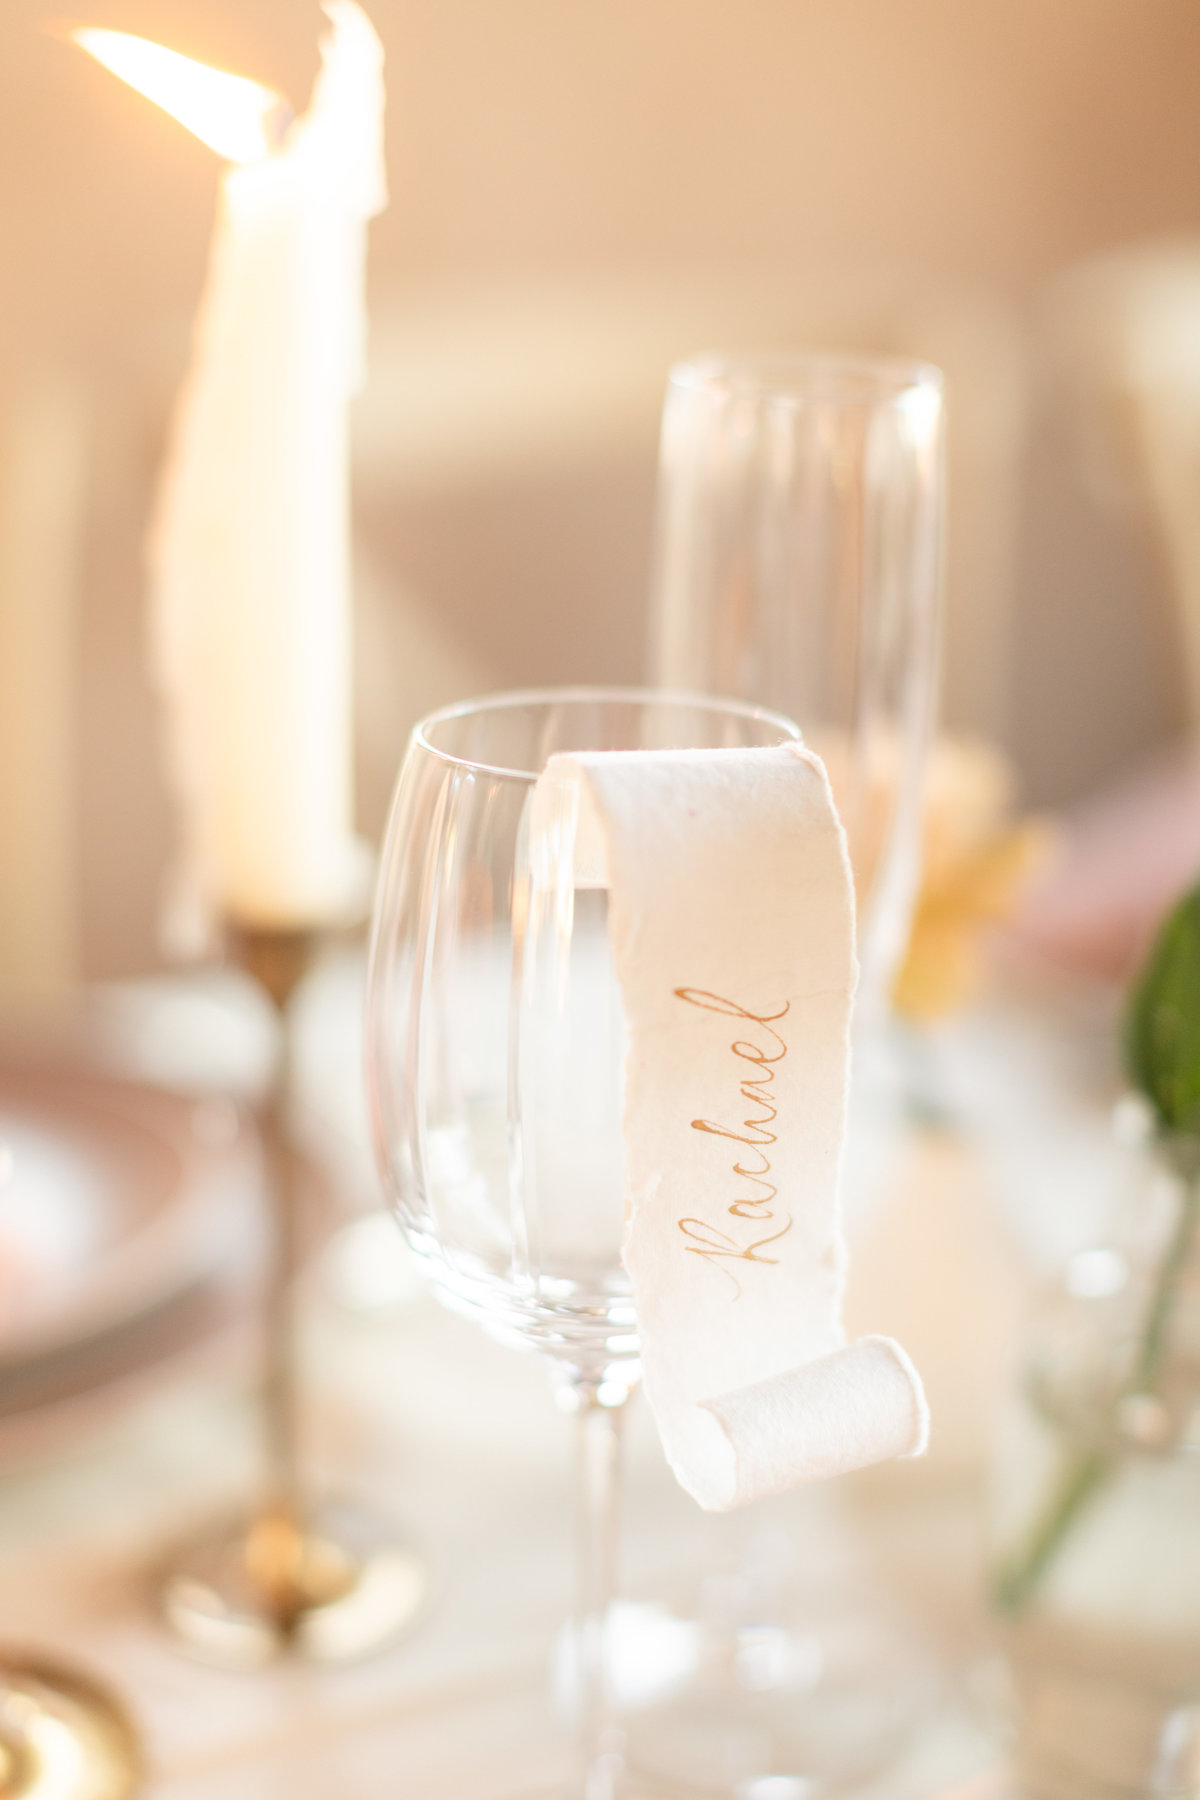 NJ wedding reception details with calligraphy place cards